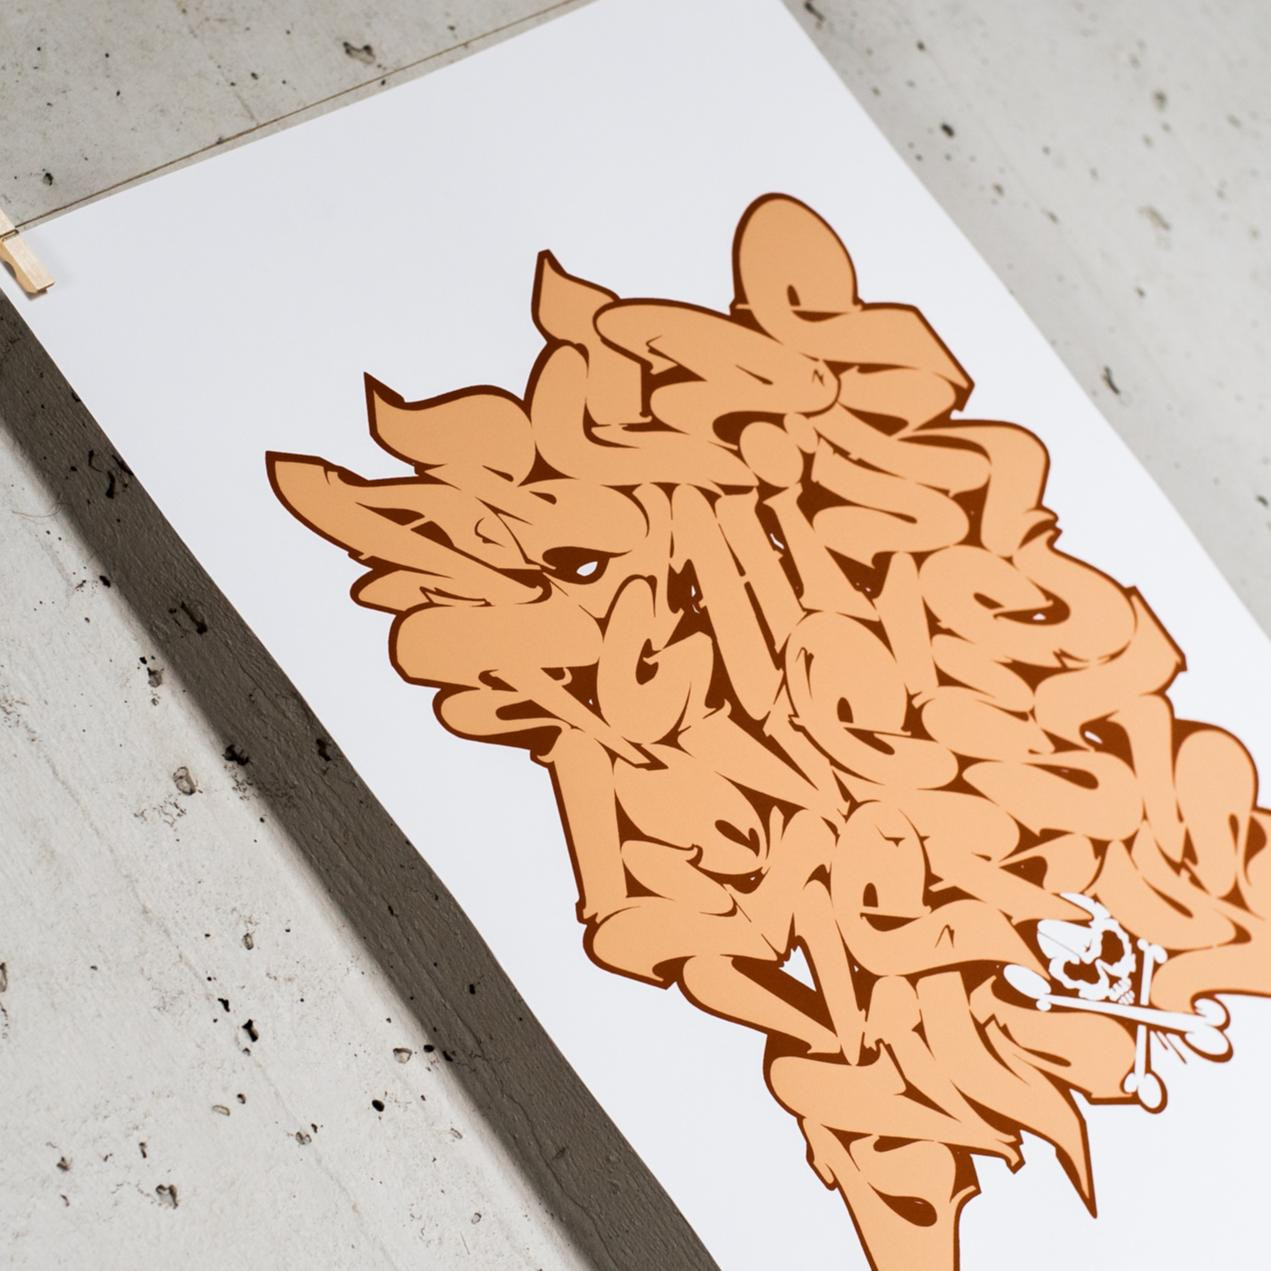 A work by Does - Print alphabet orange